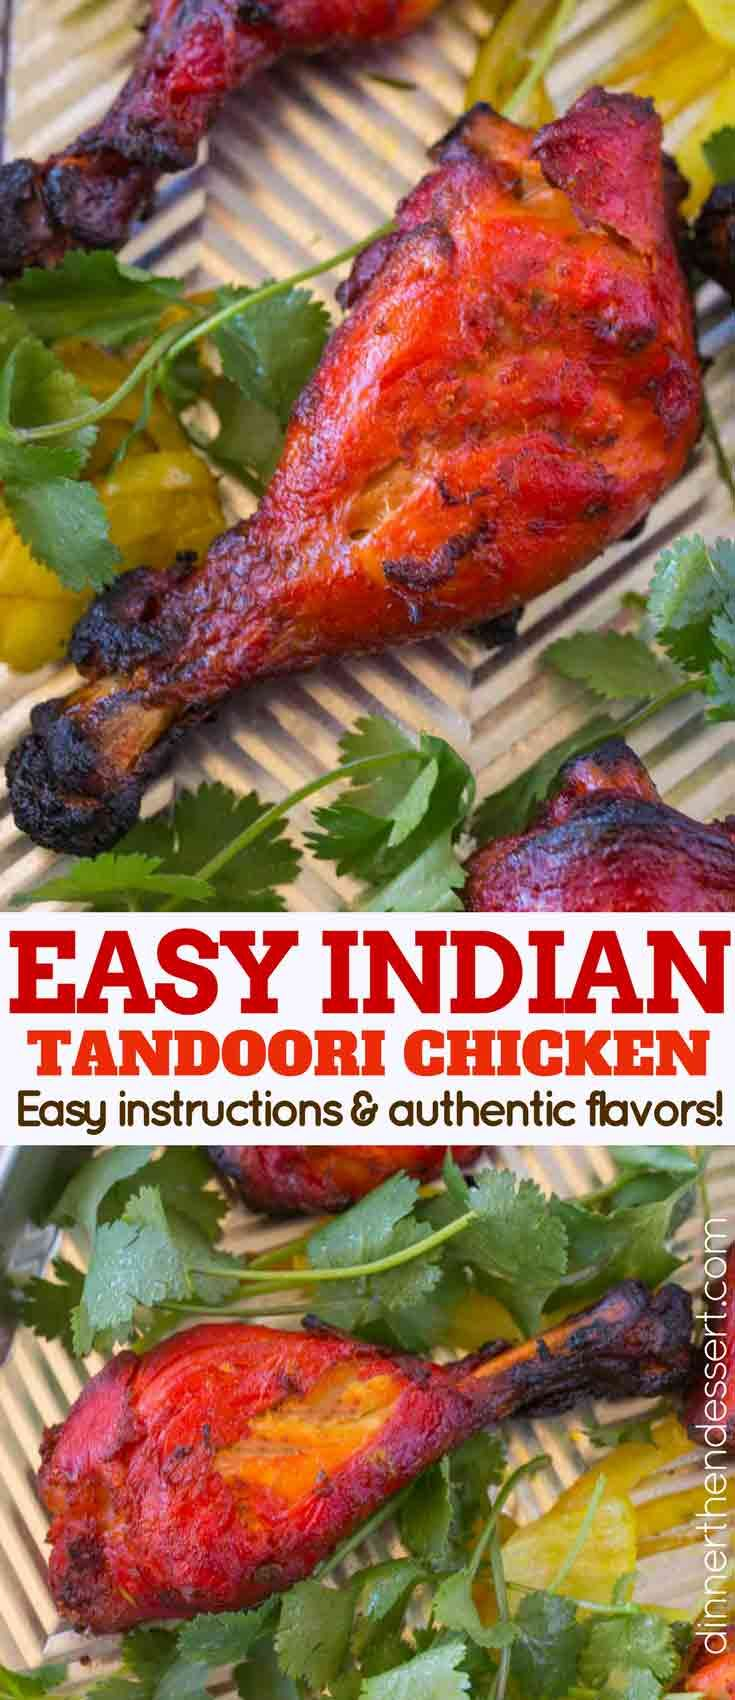 title=Tandoori Chicken is a classic Indian recipe that is marinaded in yogurt, garam masala, cayenne pepper and garlic before being baked in an oven. We make it easy enough to cook during the week and use chicken legs for easy, quick cooking. | #indianfood #indianrecipes #indianchickenrecipes #dinnerthendessert #tandoorichicken #chickentandoori #easyindianfood #tandoorispices #tandoorimarinade #grilledchicken #tandoorichicken